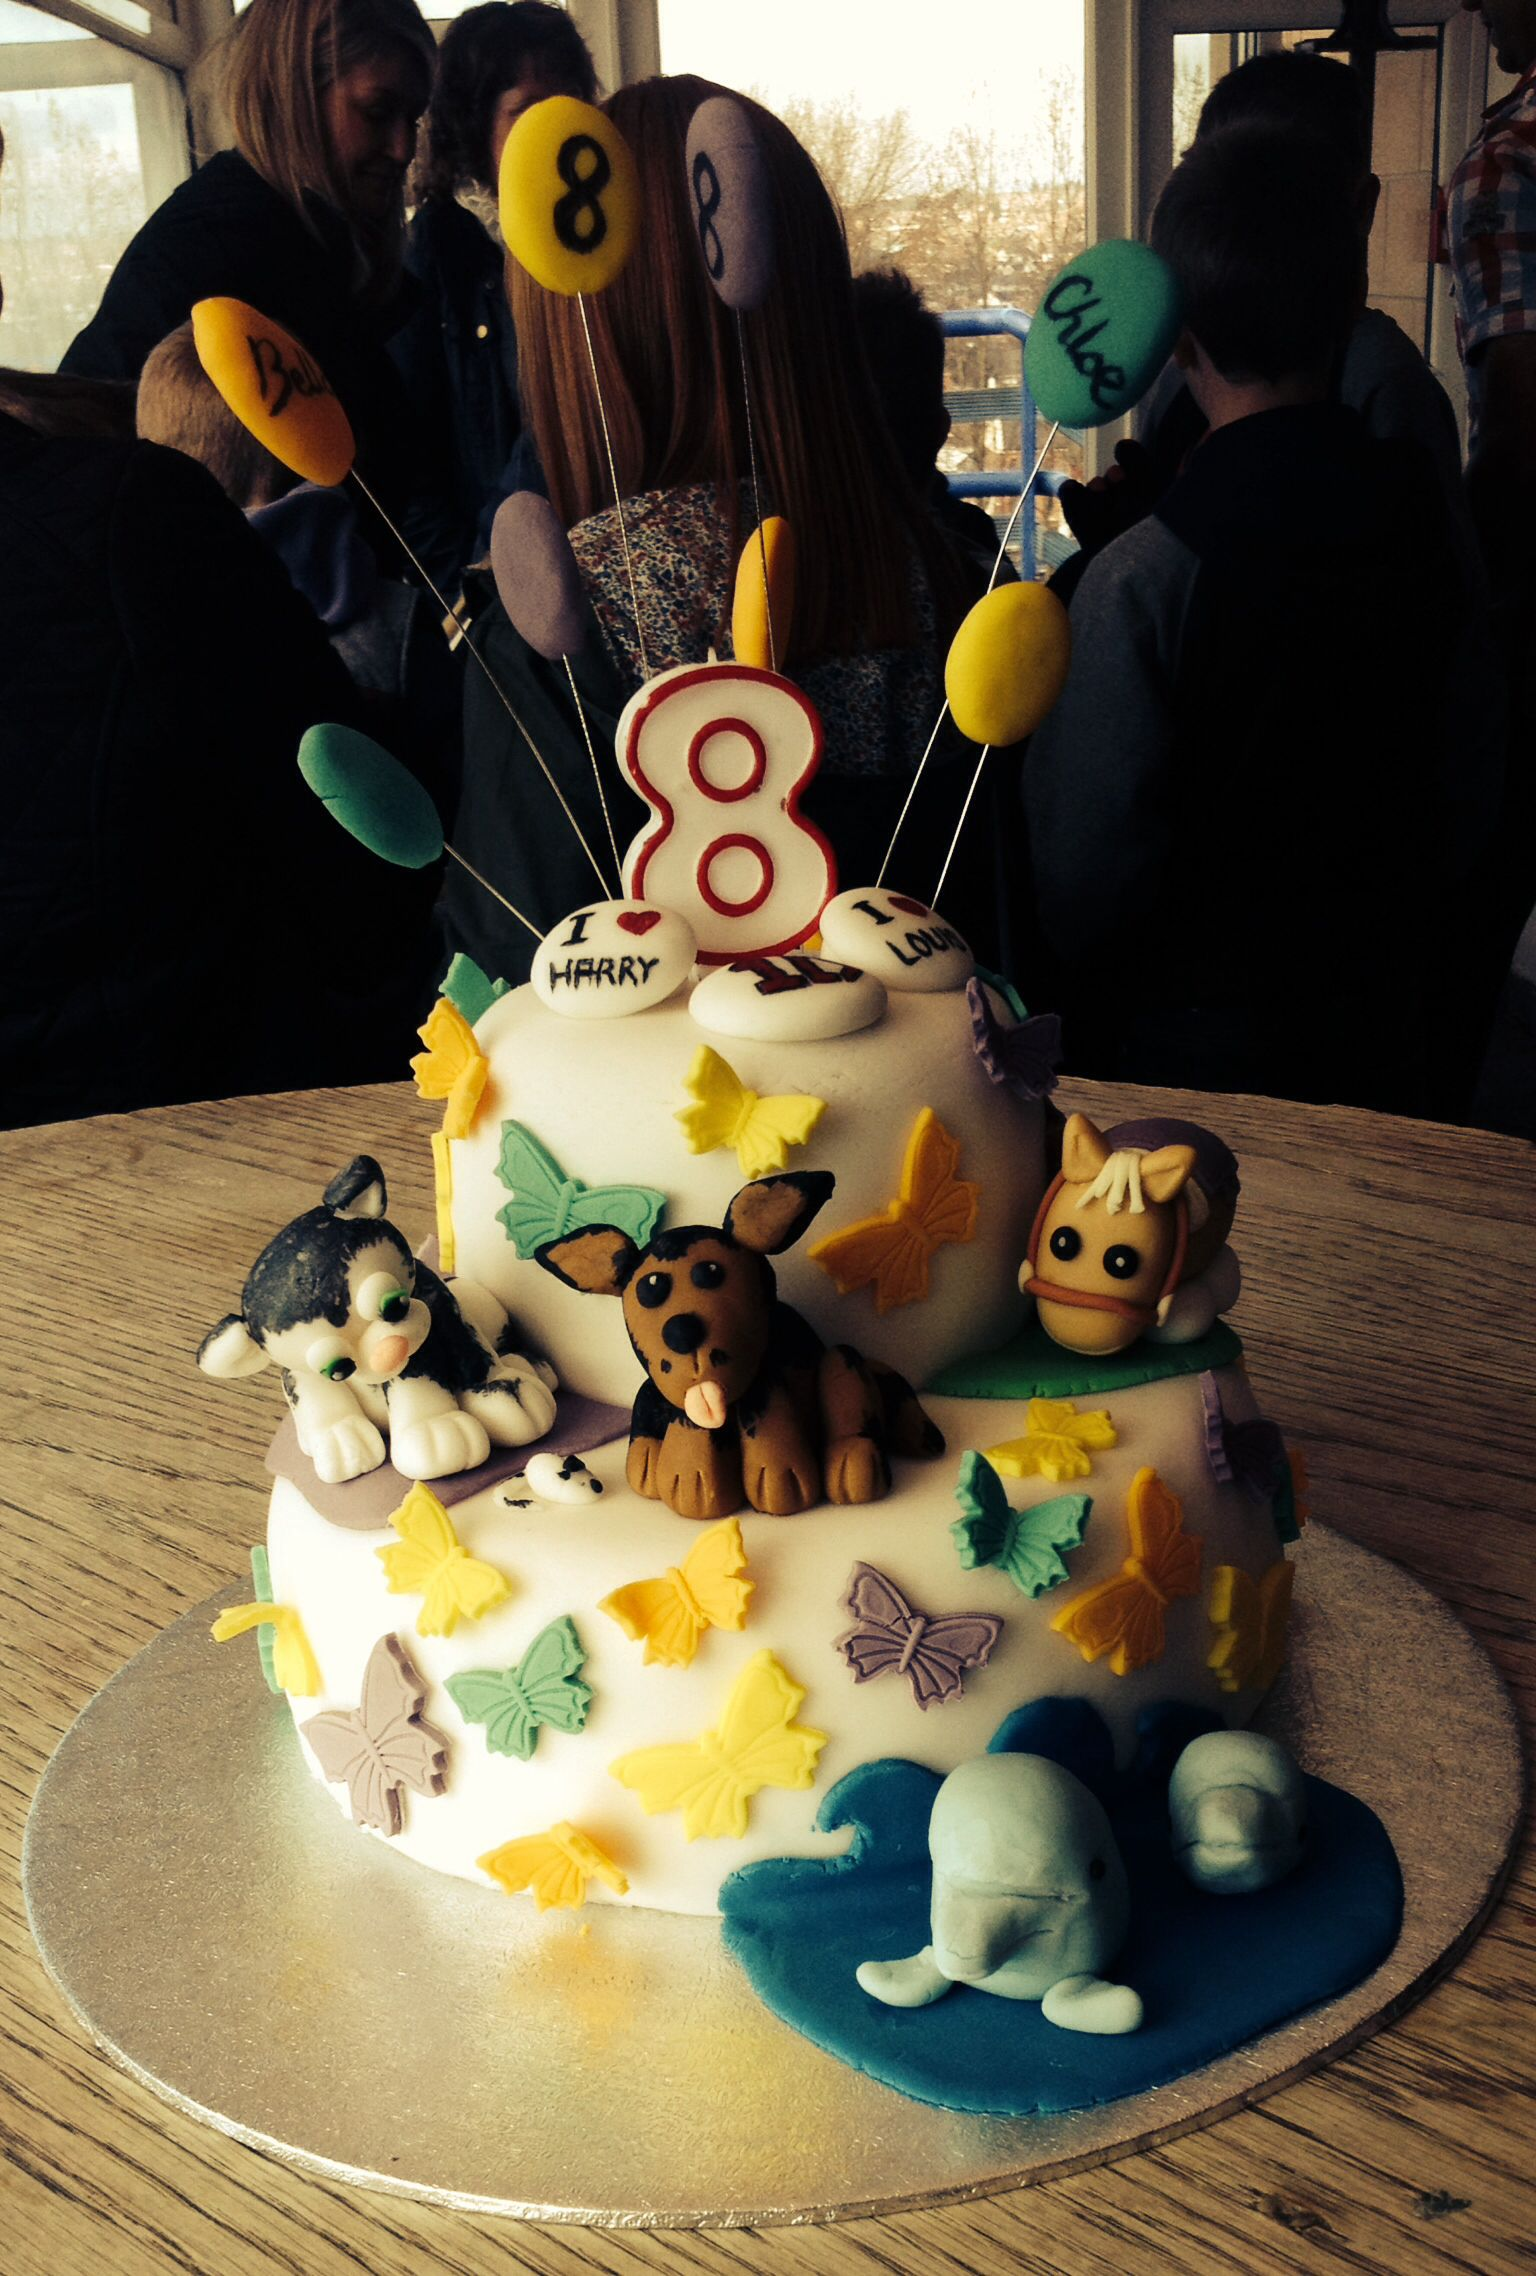 Favourite things birthday cake - horse, dog, cat, dolphin, 1d, balloons and butterflies!